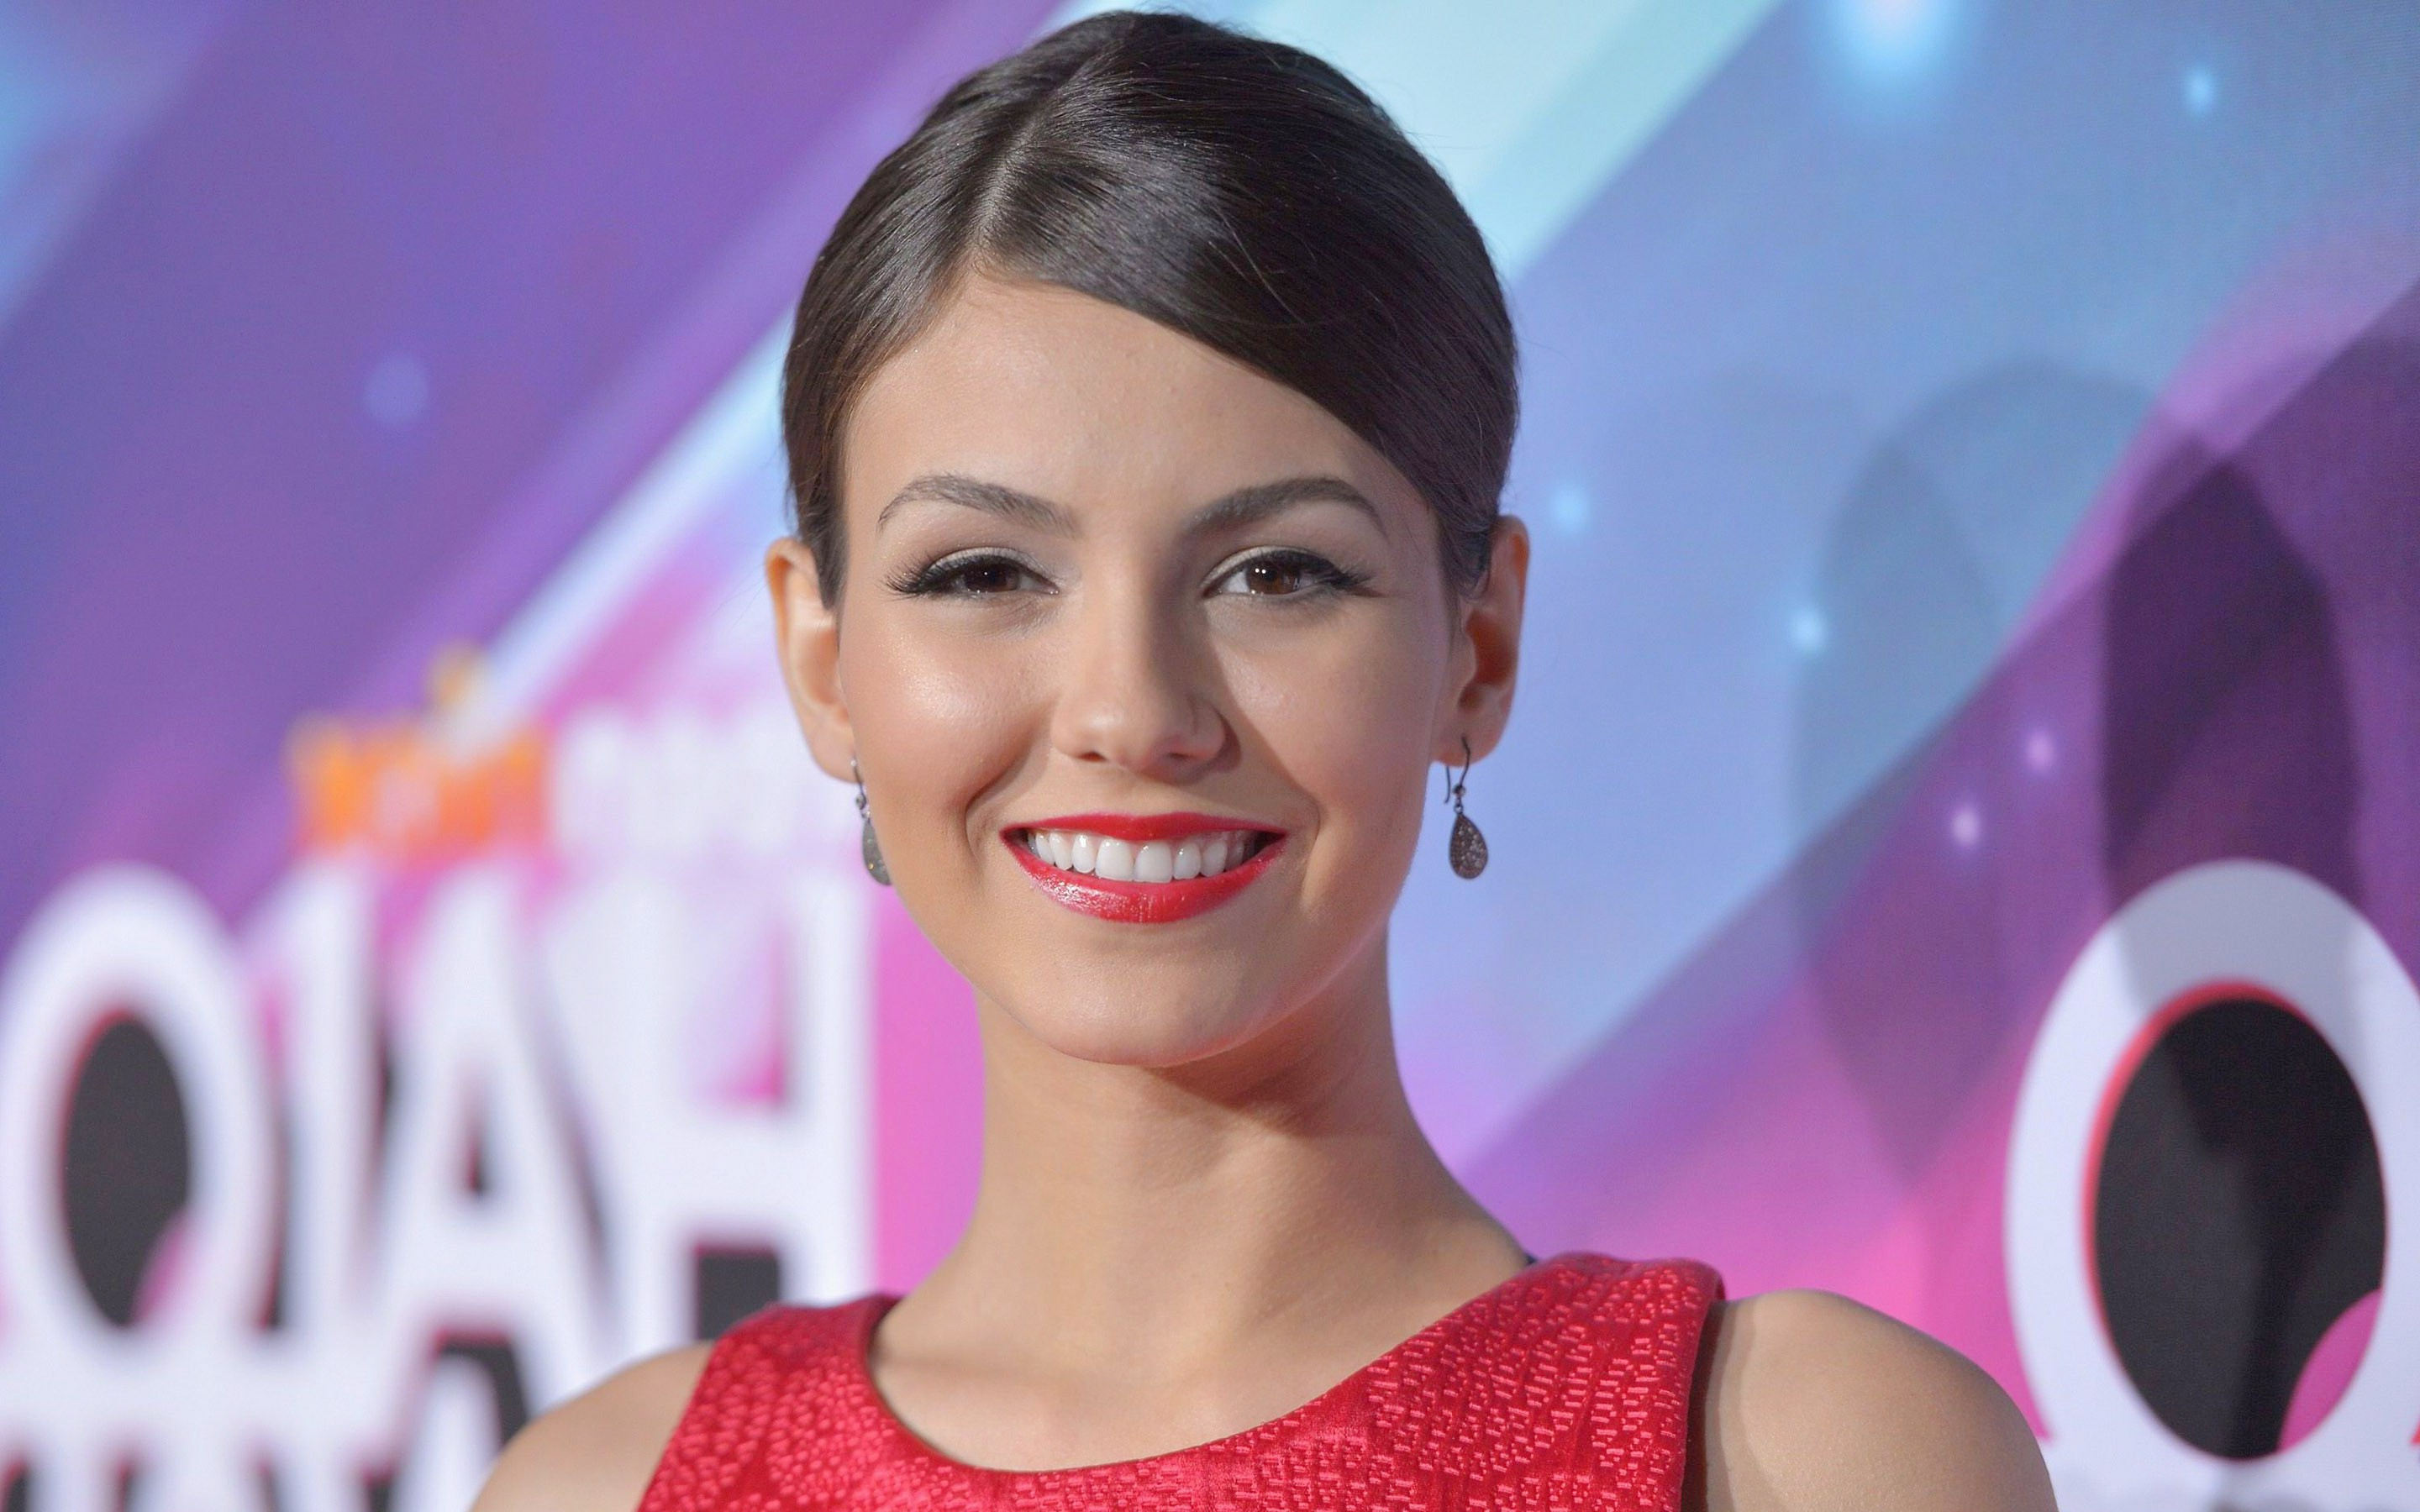 Amazing Victoria Justice Wonderful Smile Face Still Download Laptop Background Free Wallpaper Hd